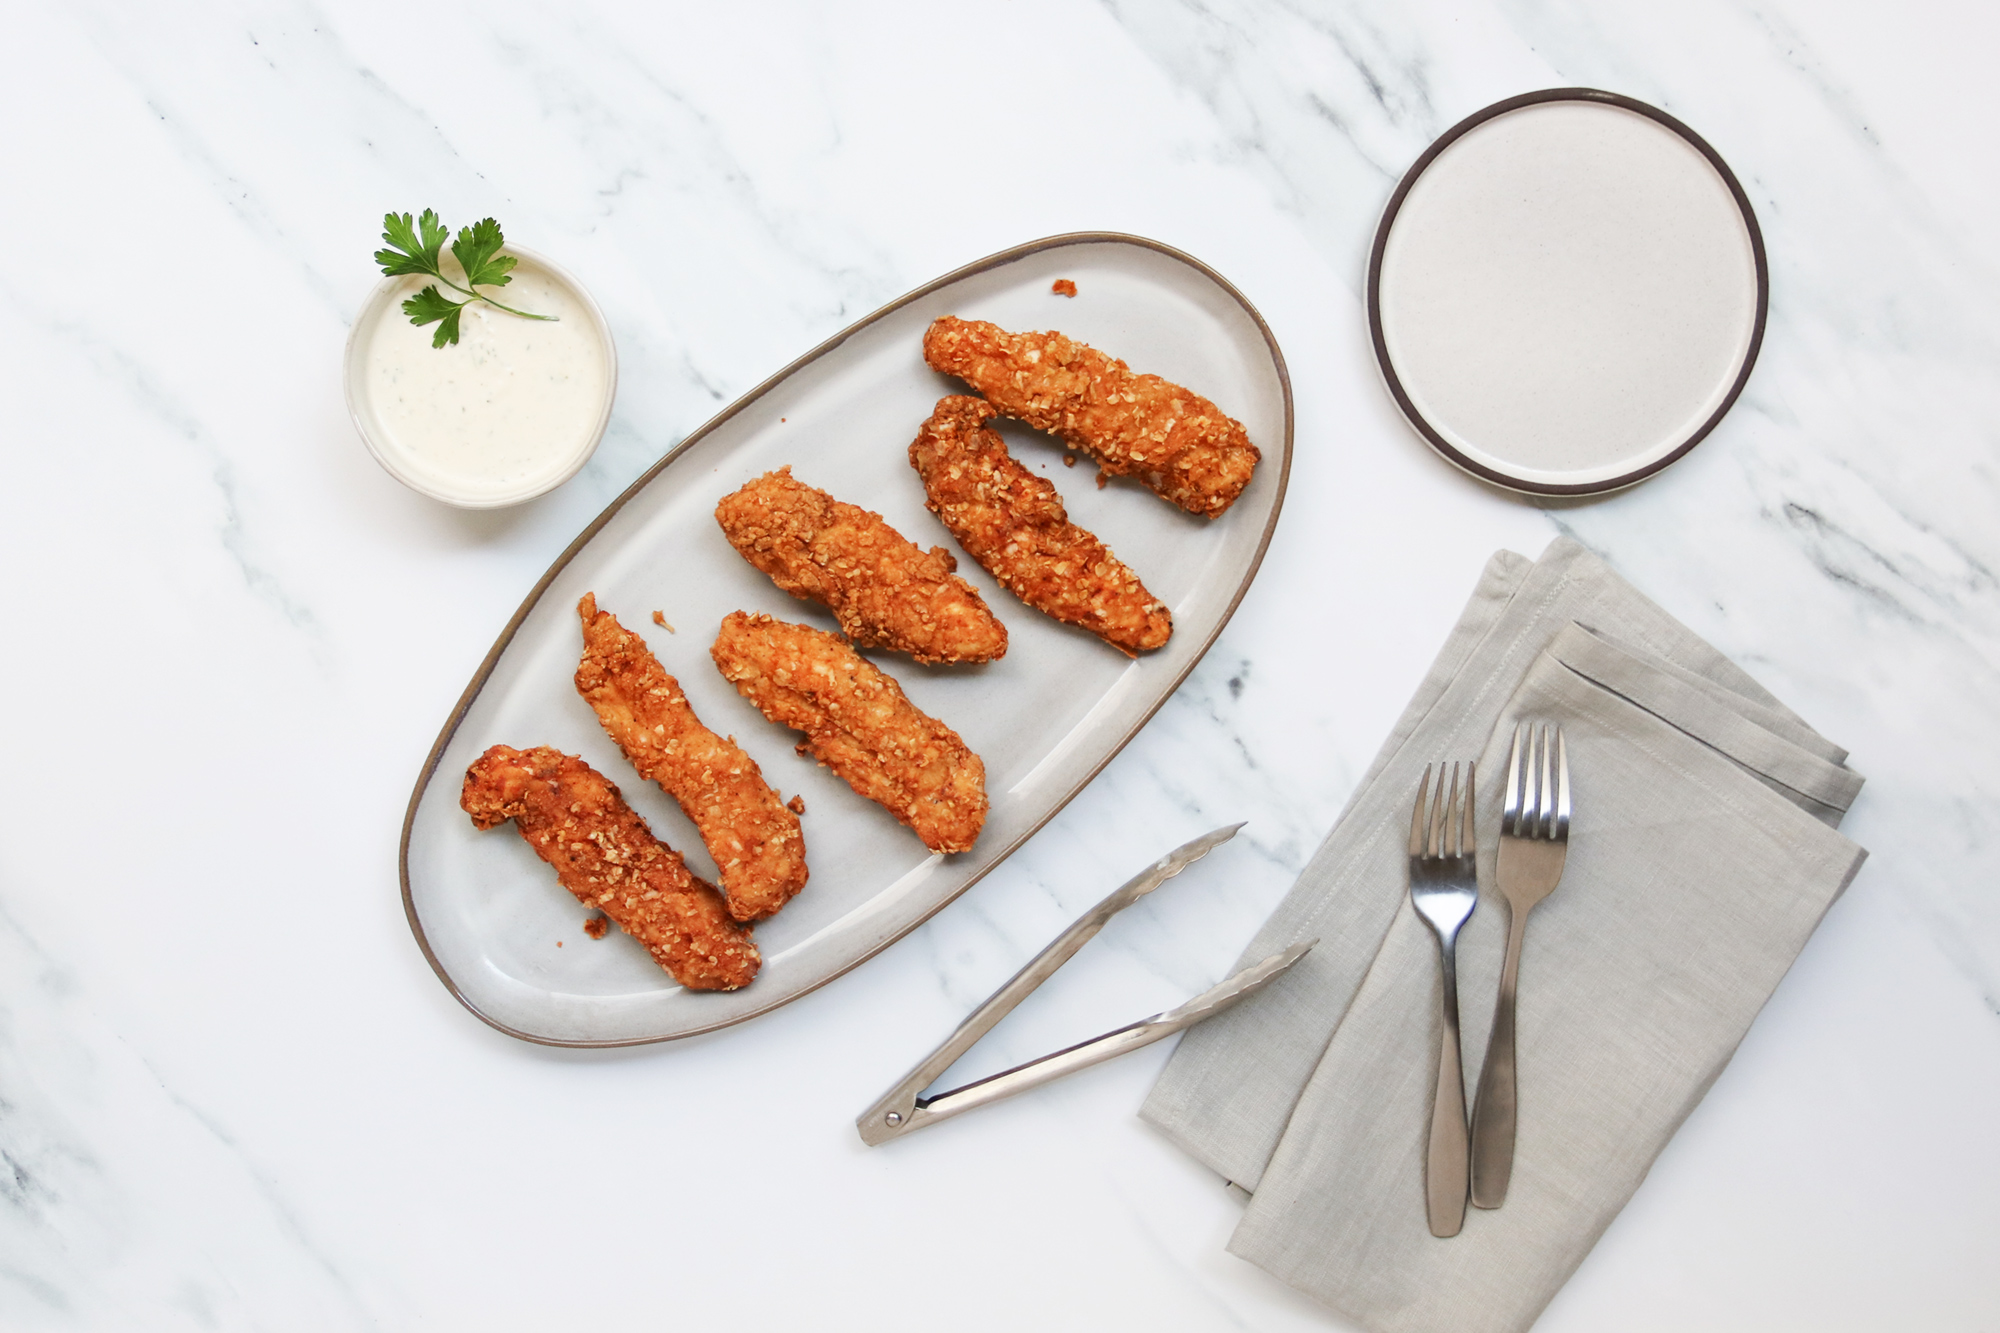 Dax Shepard's Kids Love This Oat-Crusted Chicken Tenders Recipe